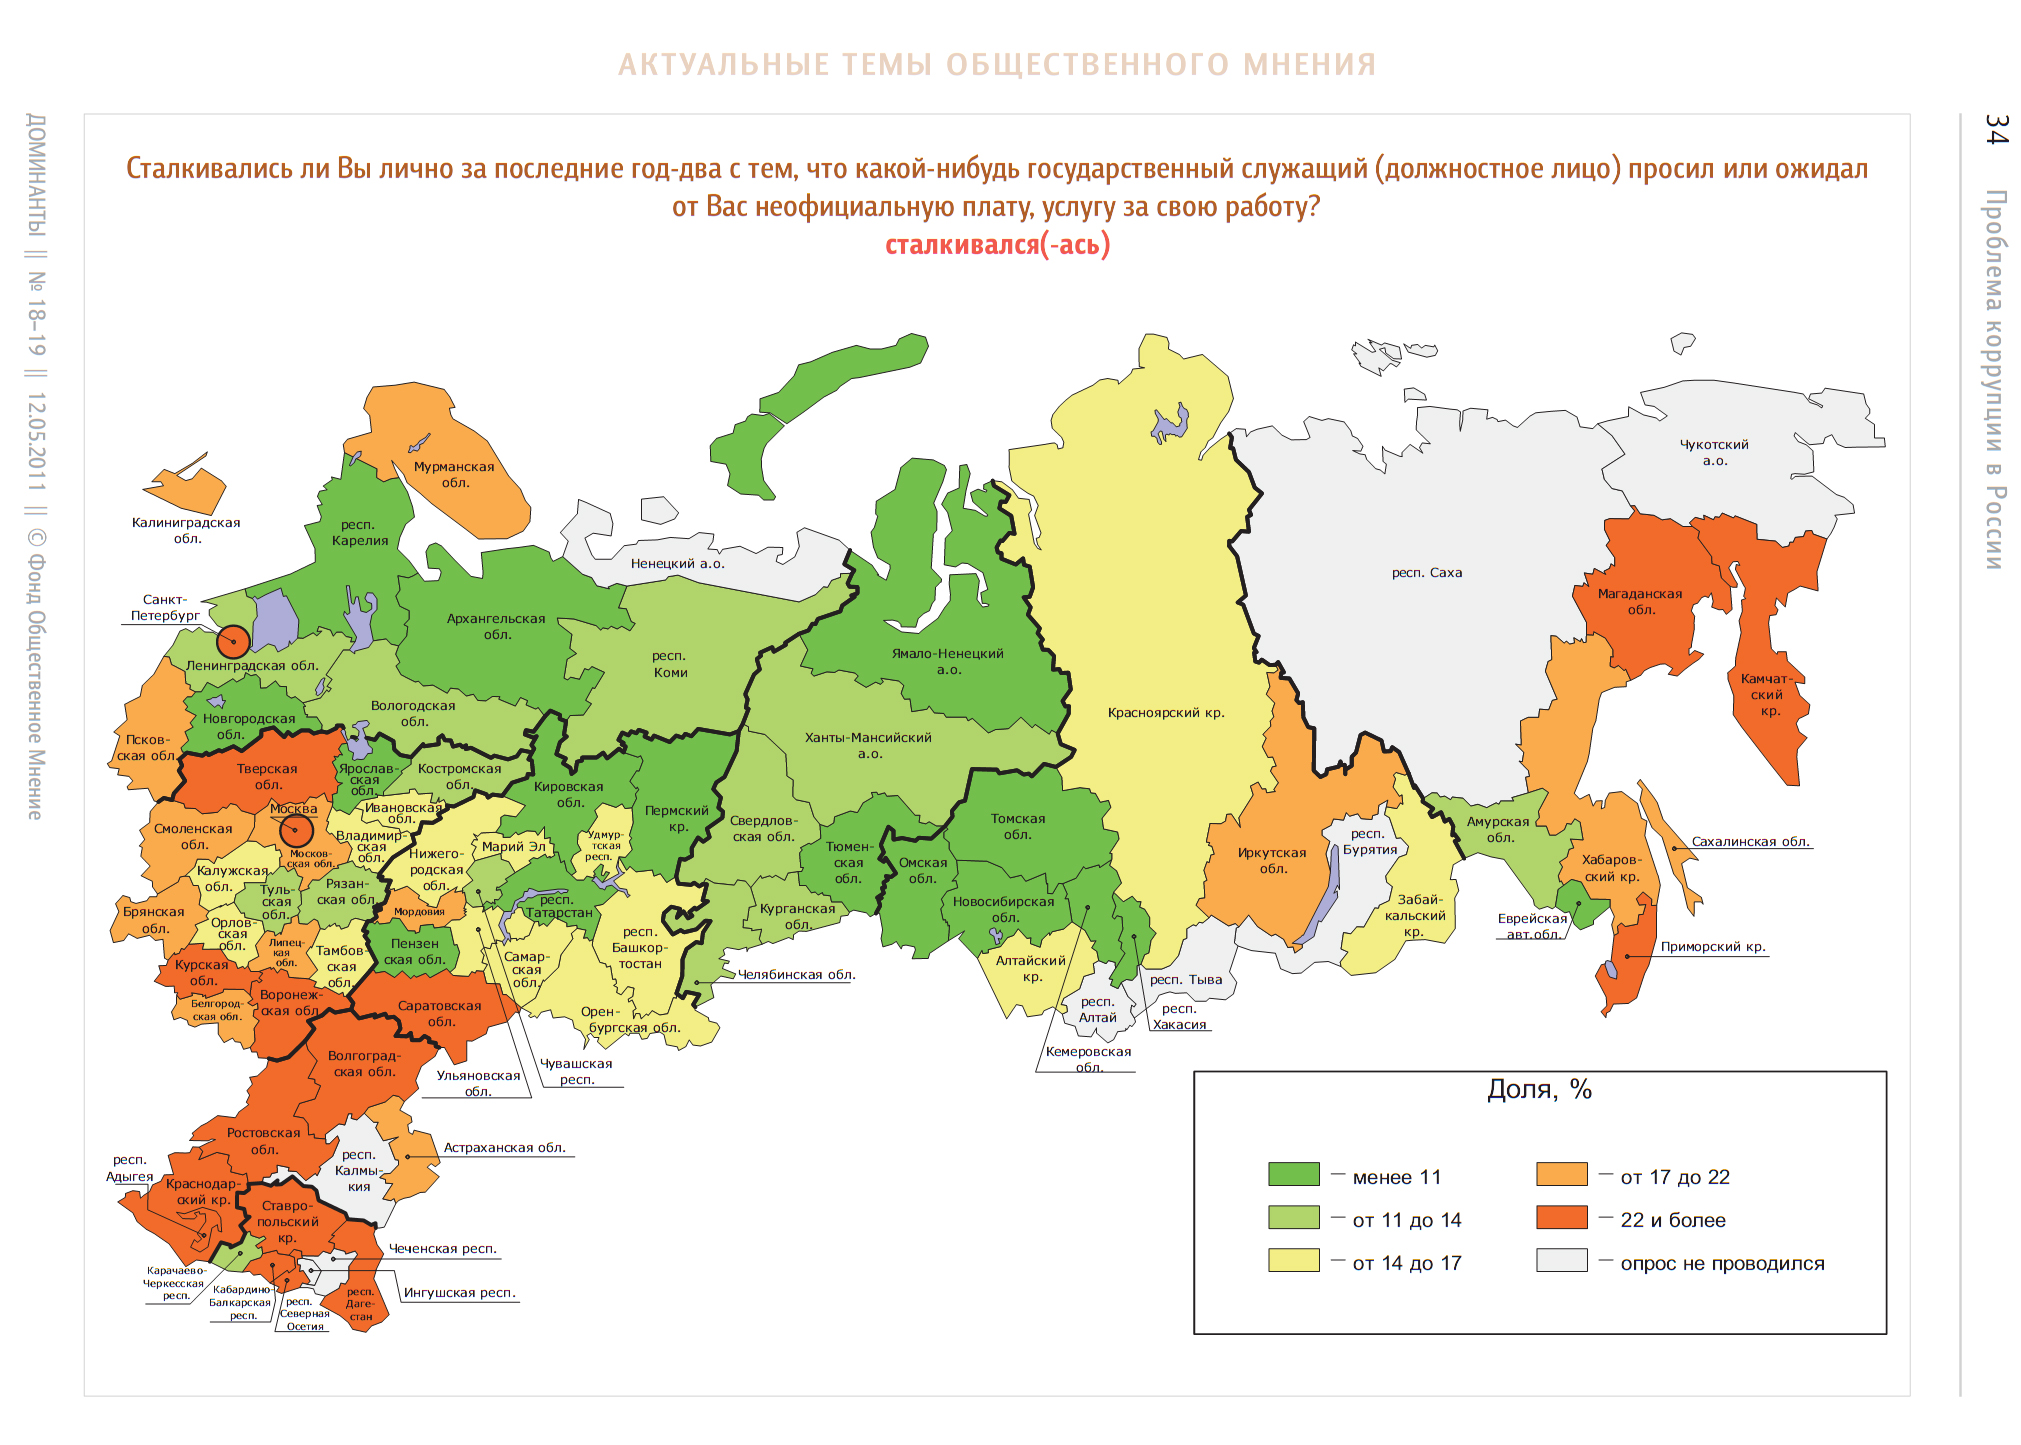 russia-corruption-map-2011-fom